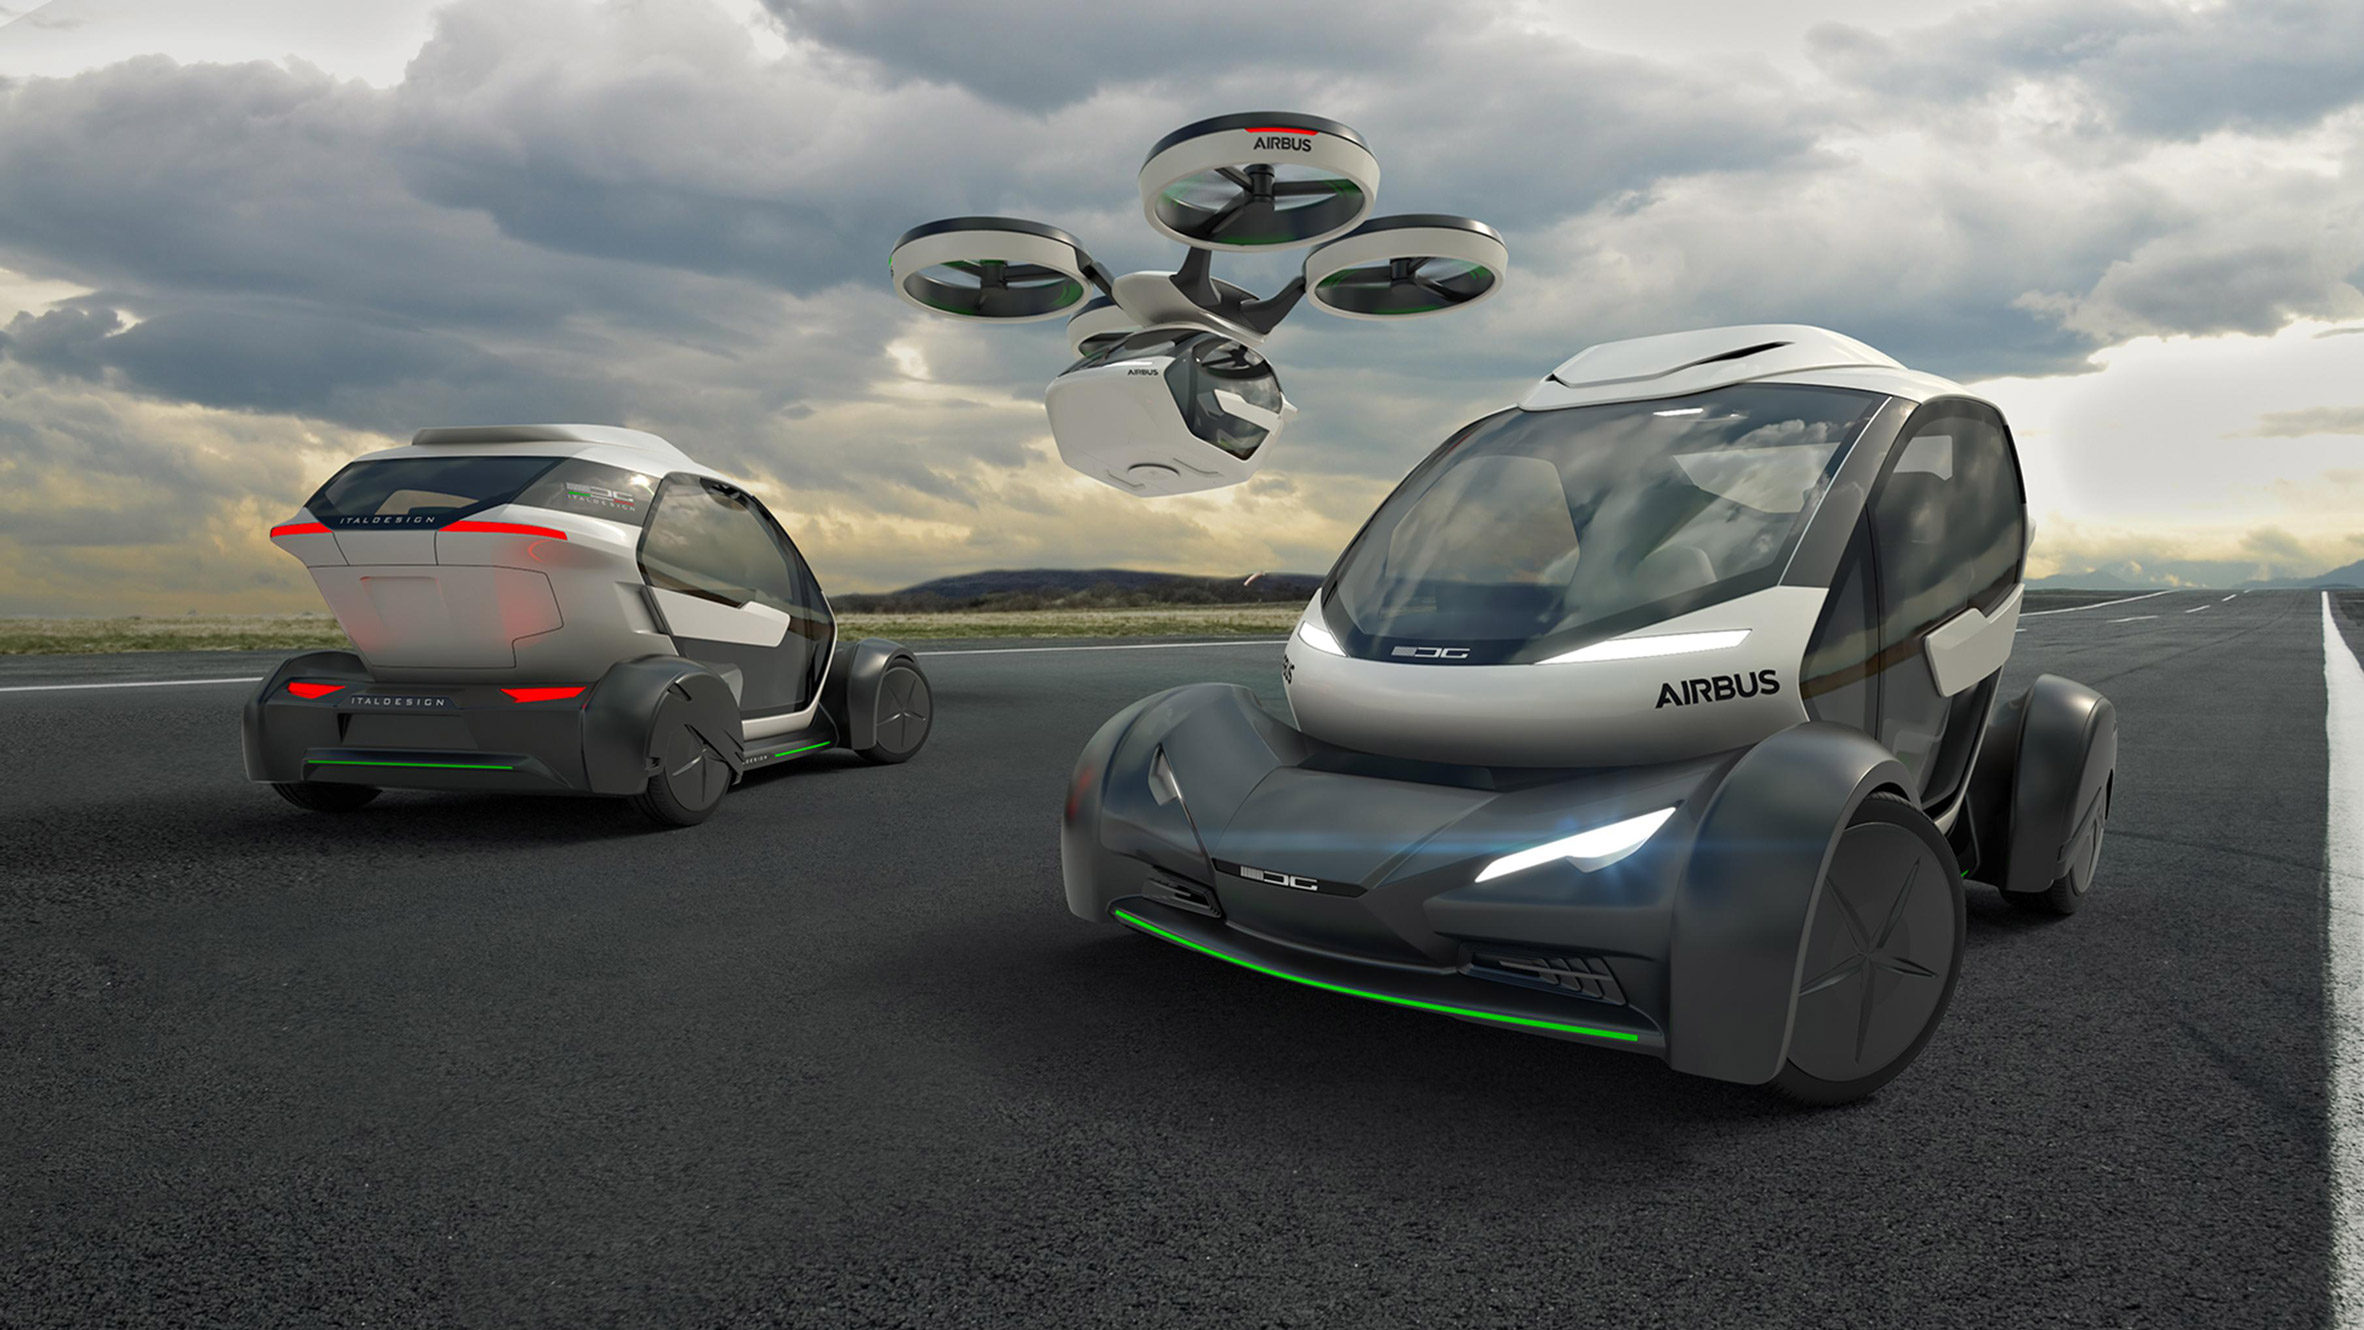 Airbus presents concept for flying car at Geneva Motor Show